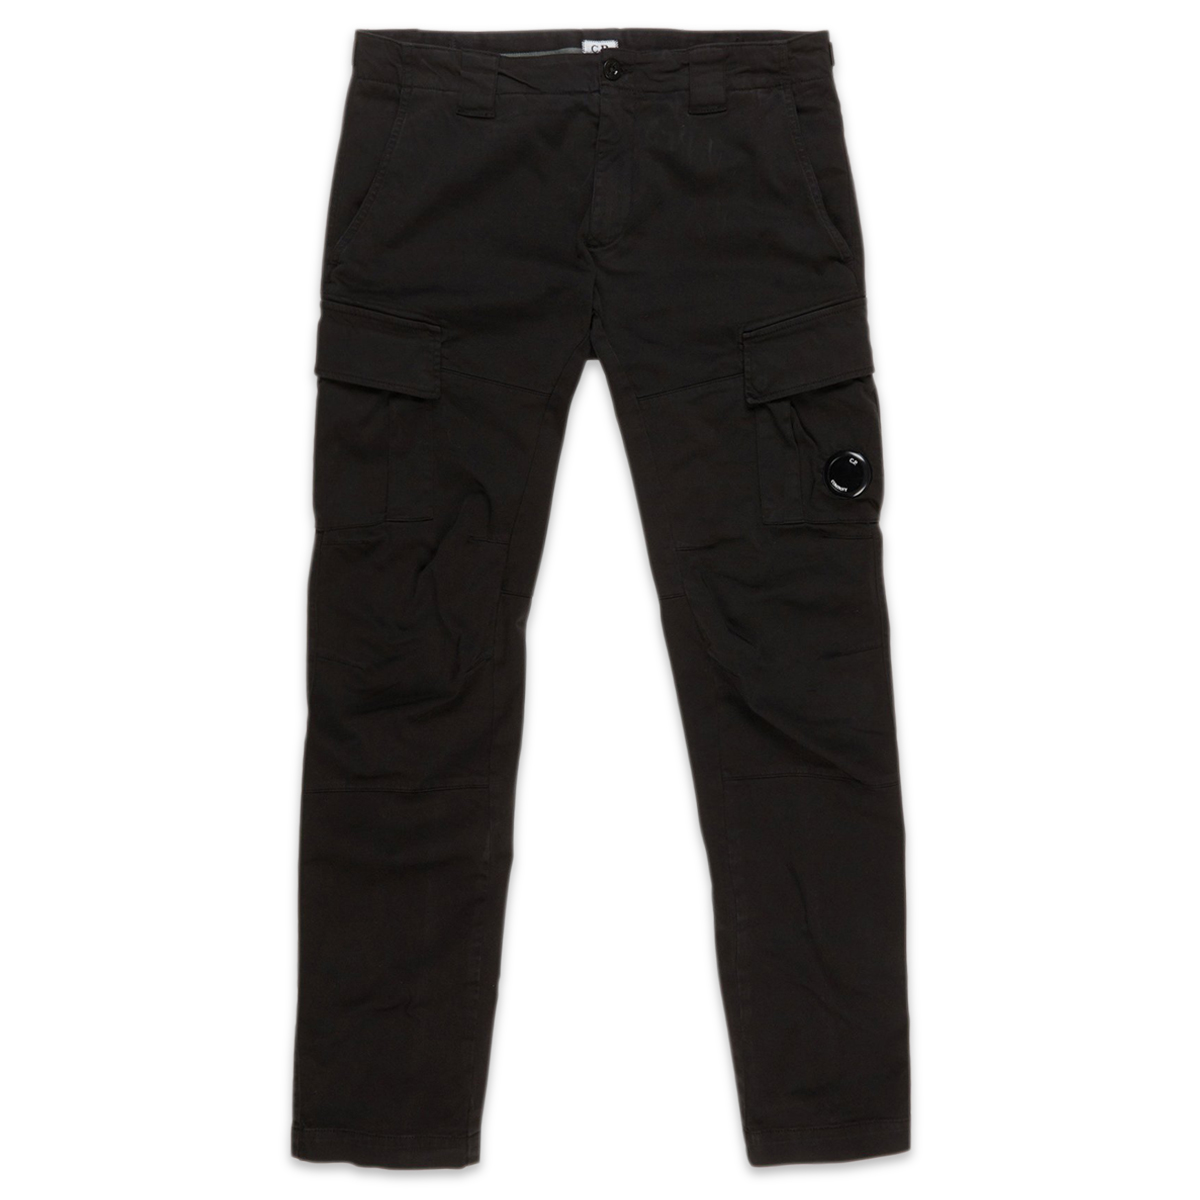 CP Company Garment Dyed Stretch Sateen Lens Pocket Pants